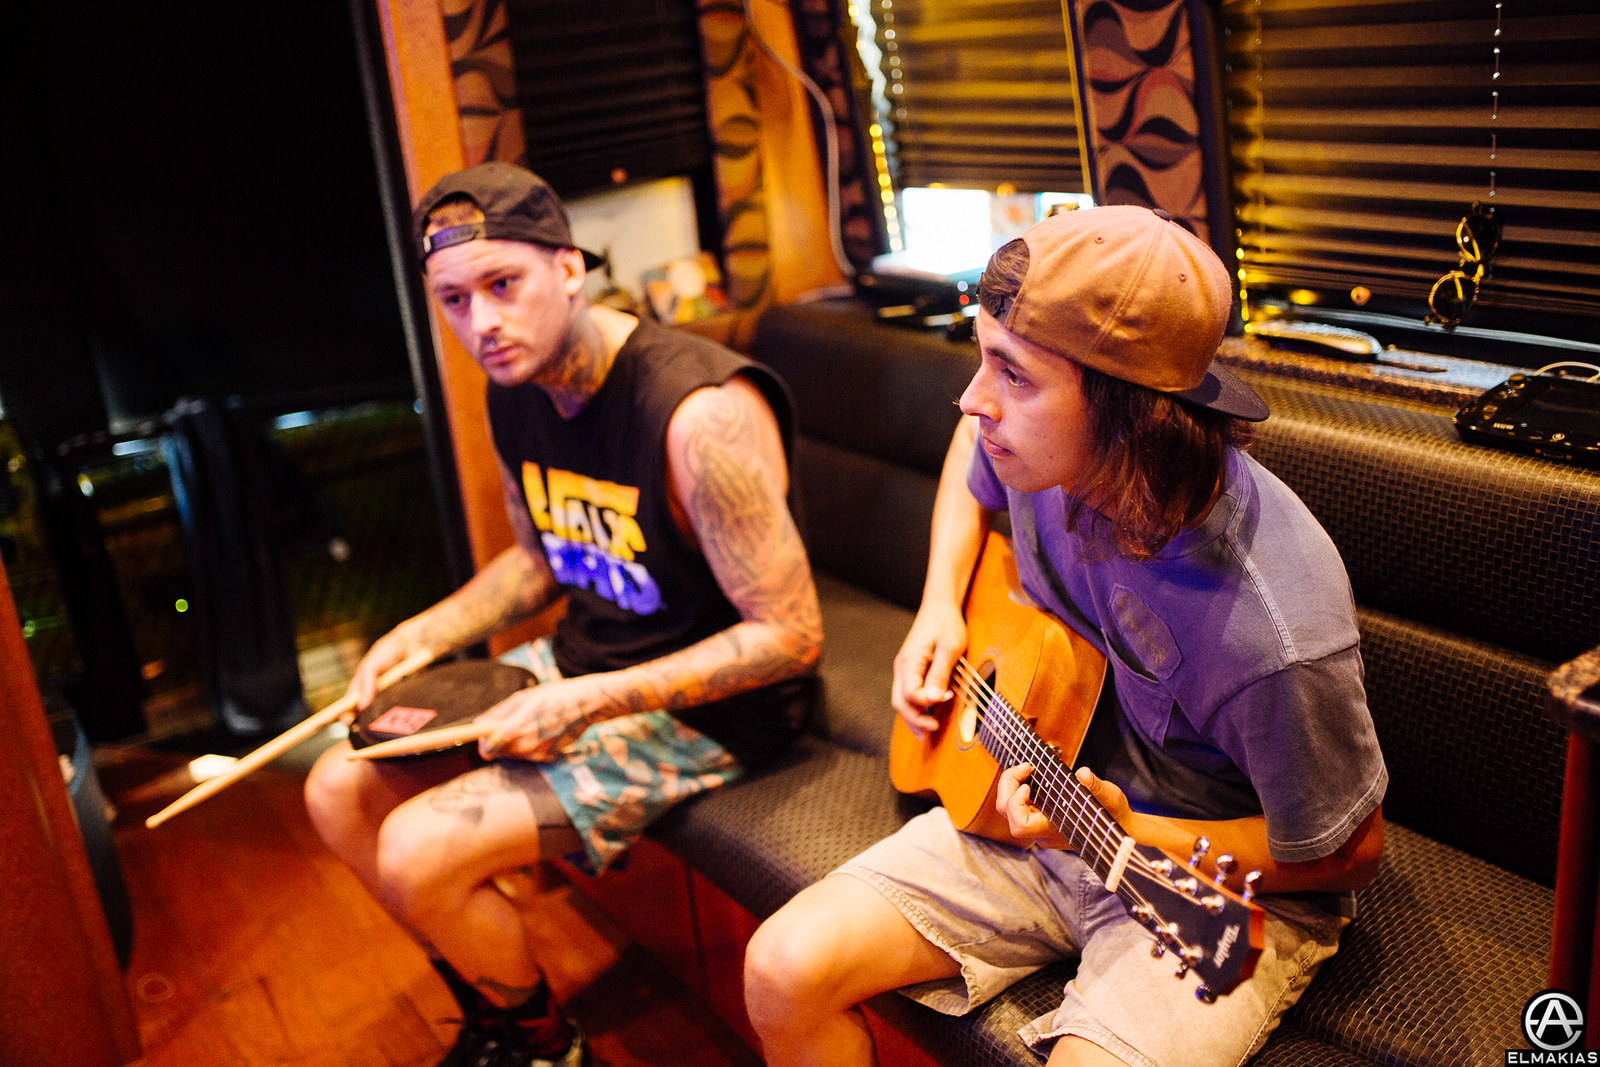 Mike Fuentes and Vic Fuentes of Pierce the Veil at Warped Tour 2015 by Adam Elmakias